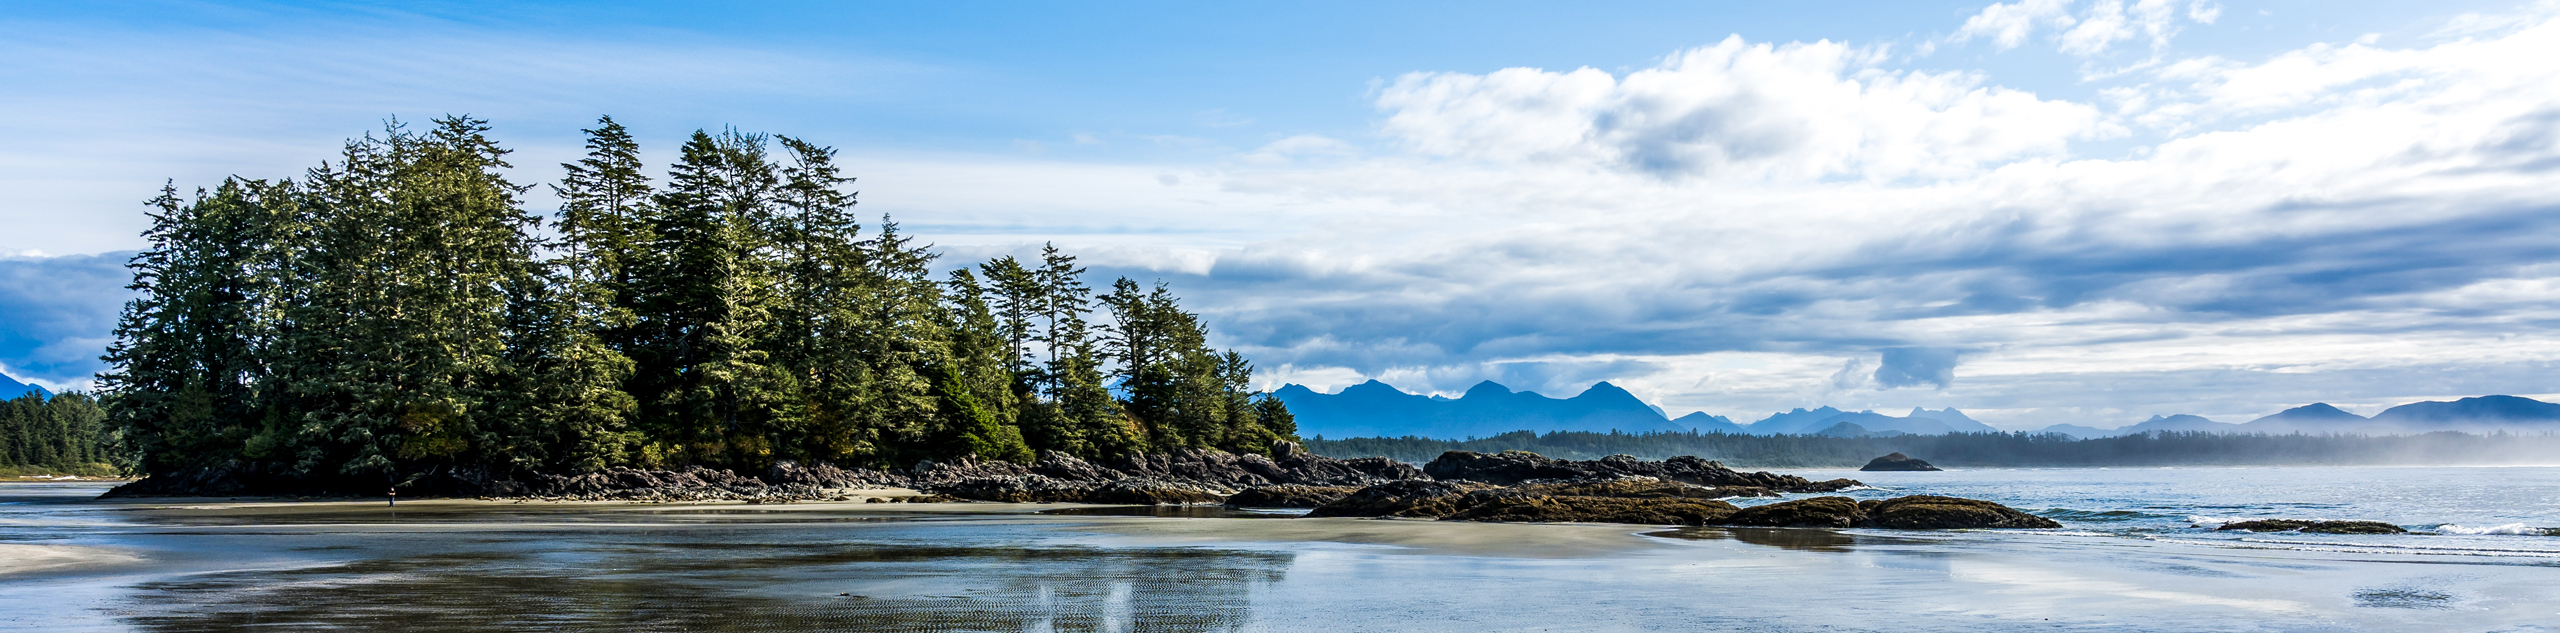 Vancouver Island and the Canadian Rockies Self-Drive